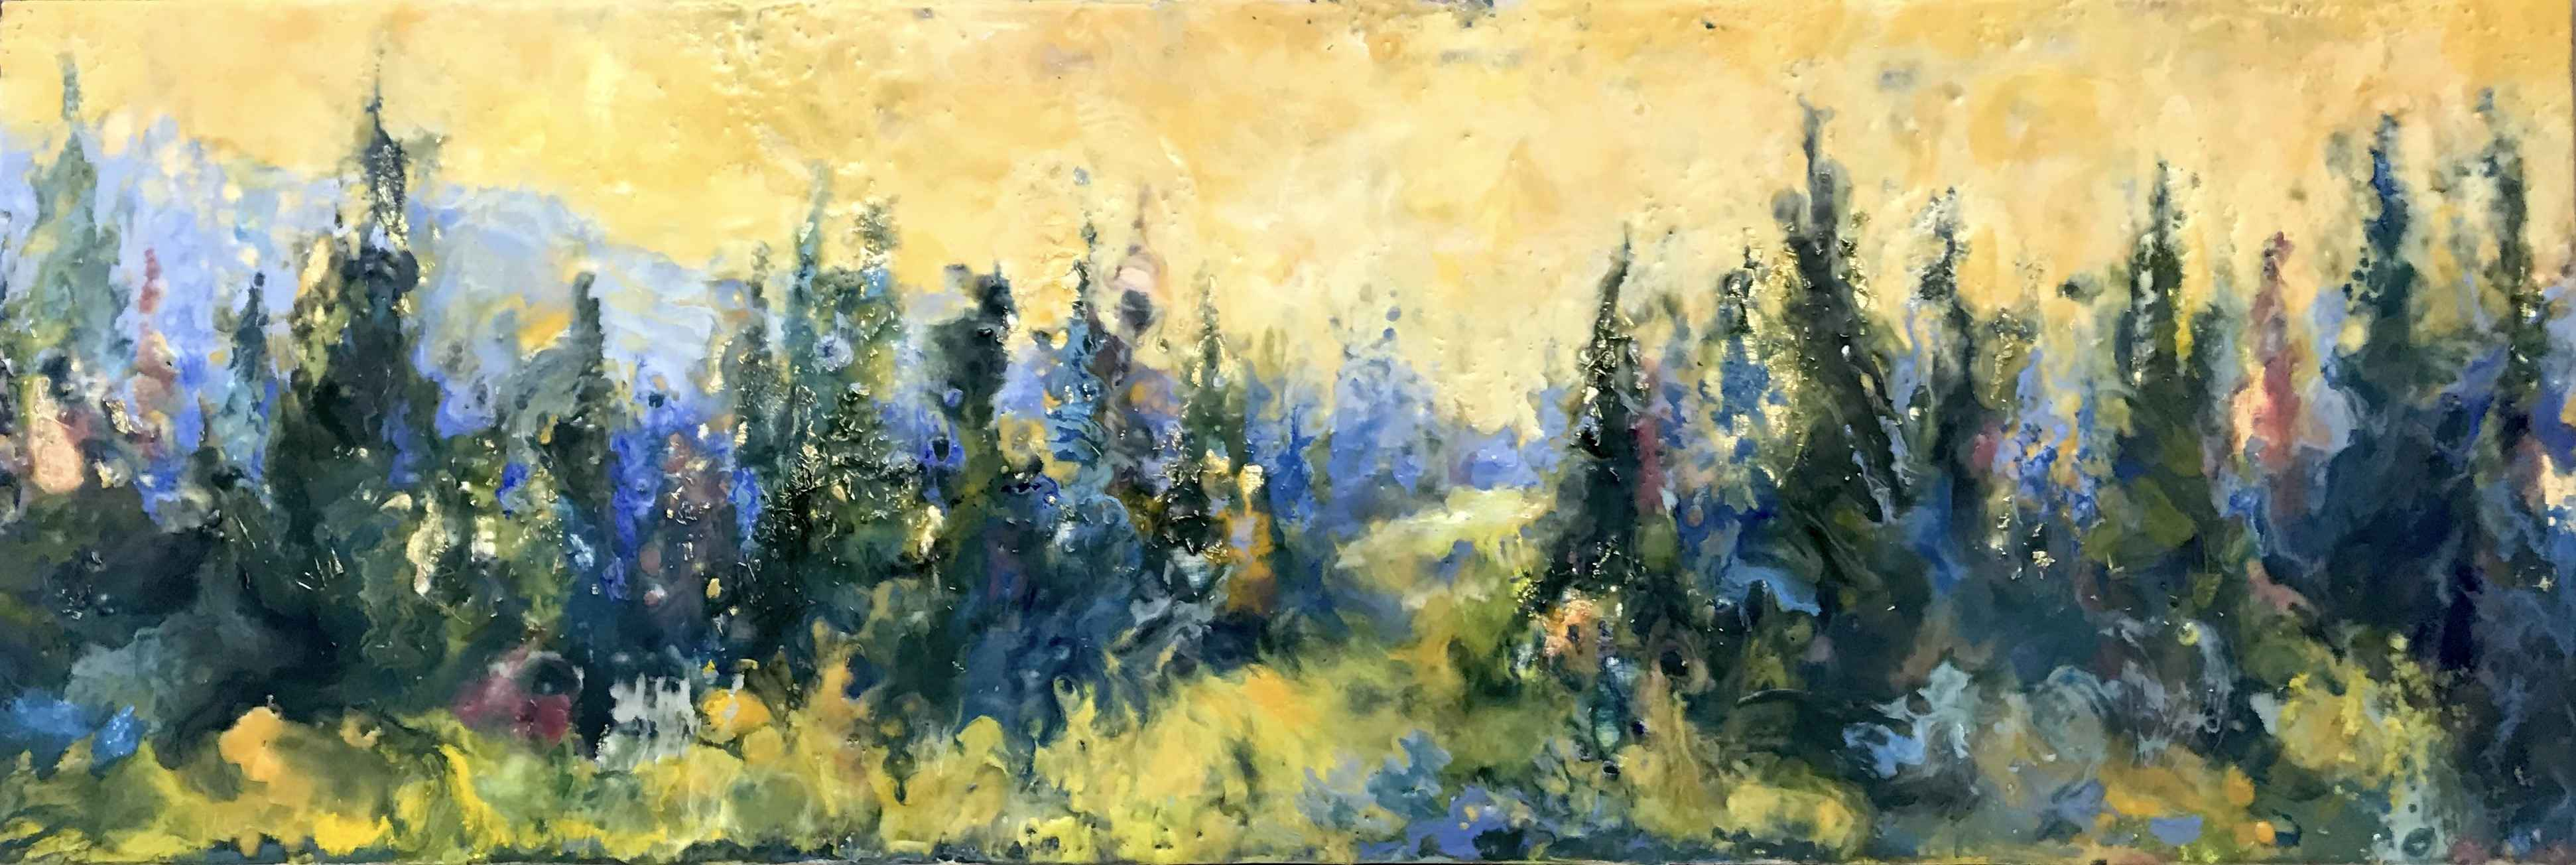 The Forest is My Happ... by  Kathy Bradshaw - Masterpiece Online